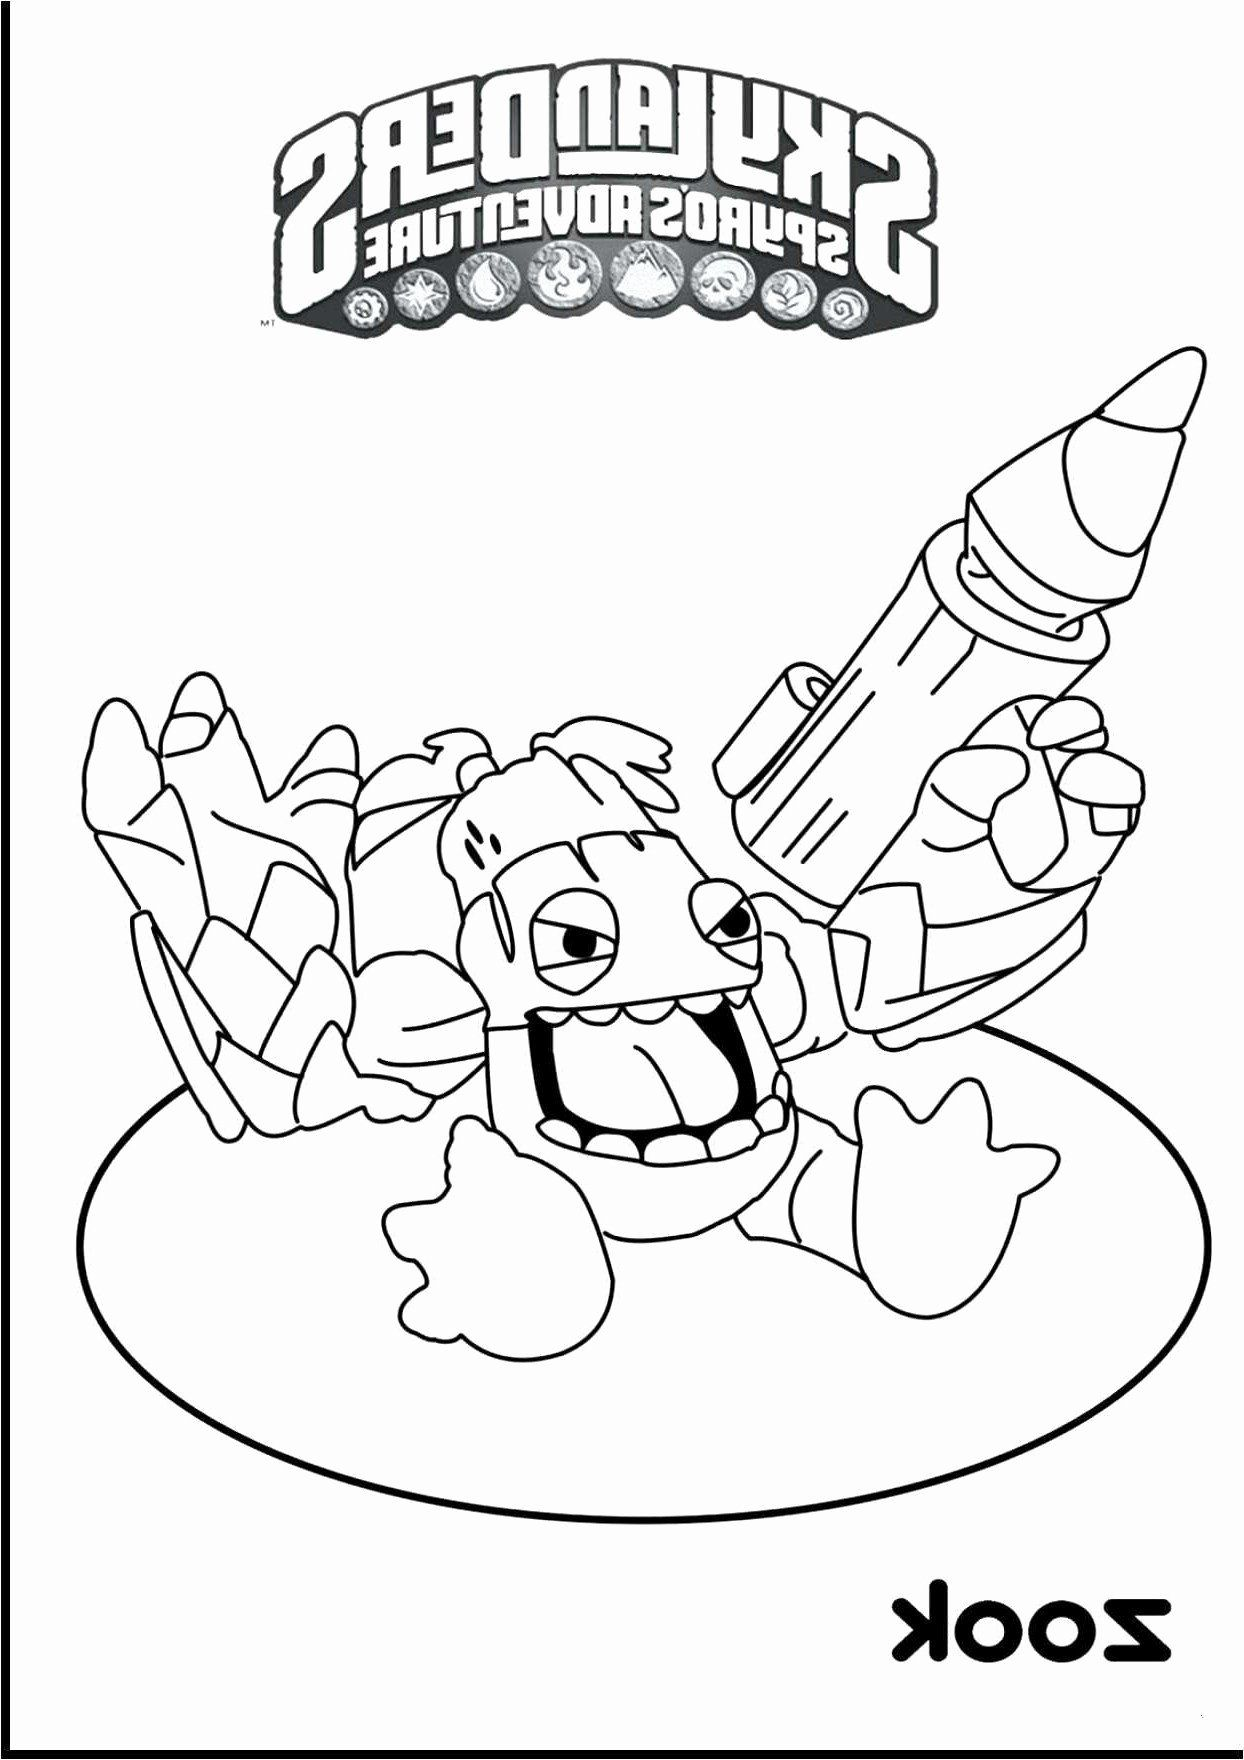 Coloring Pages Of Cartoons Awesome Finding Nemo Coloring